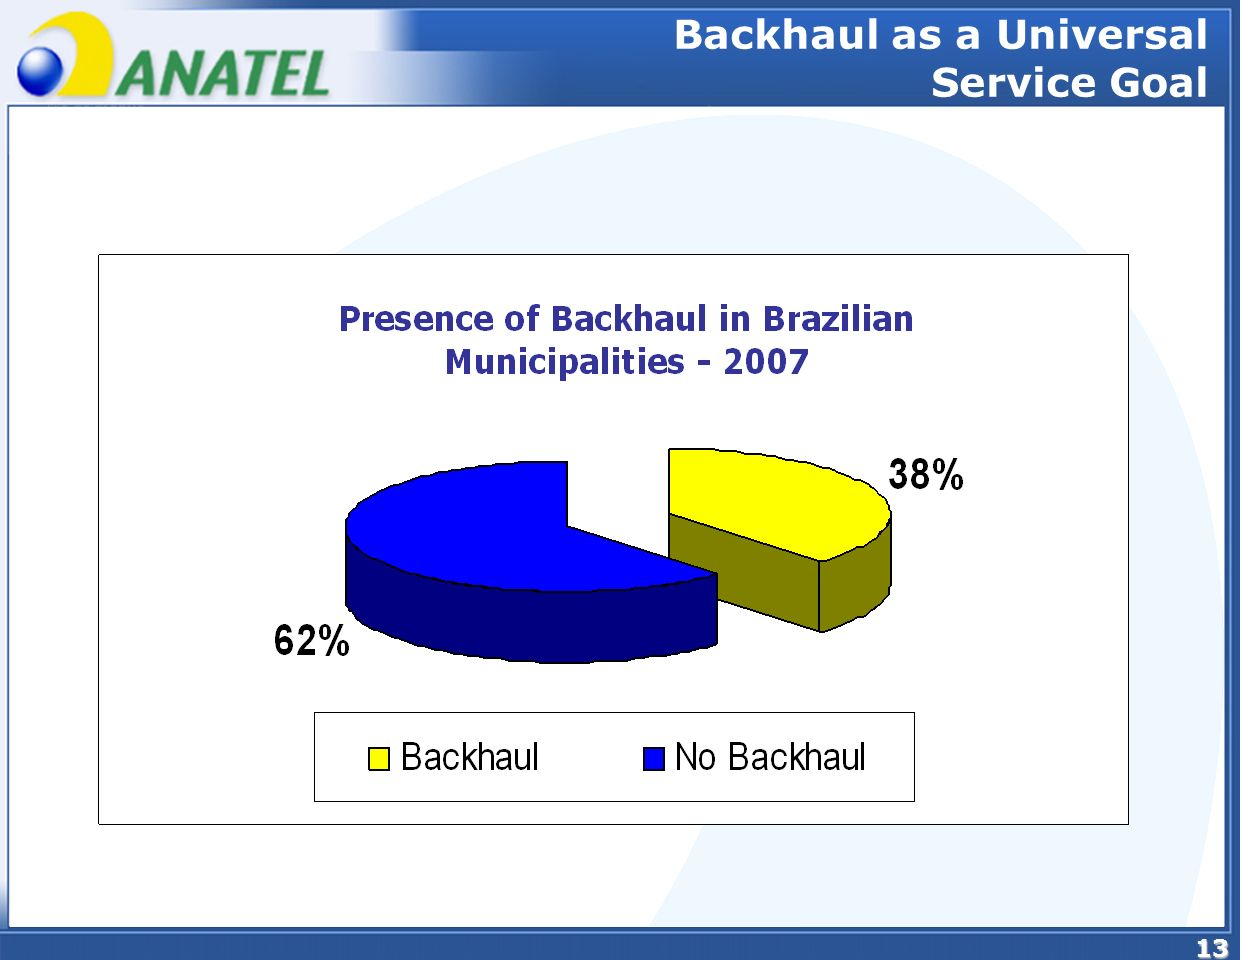 13 Backhaul as a Universal Service Goal